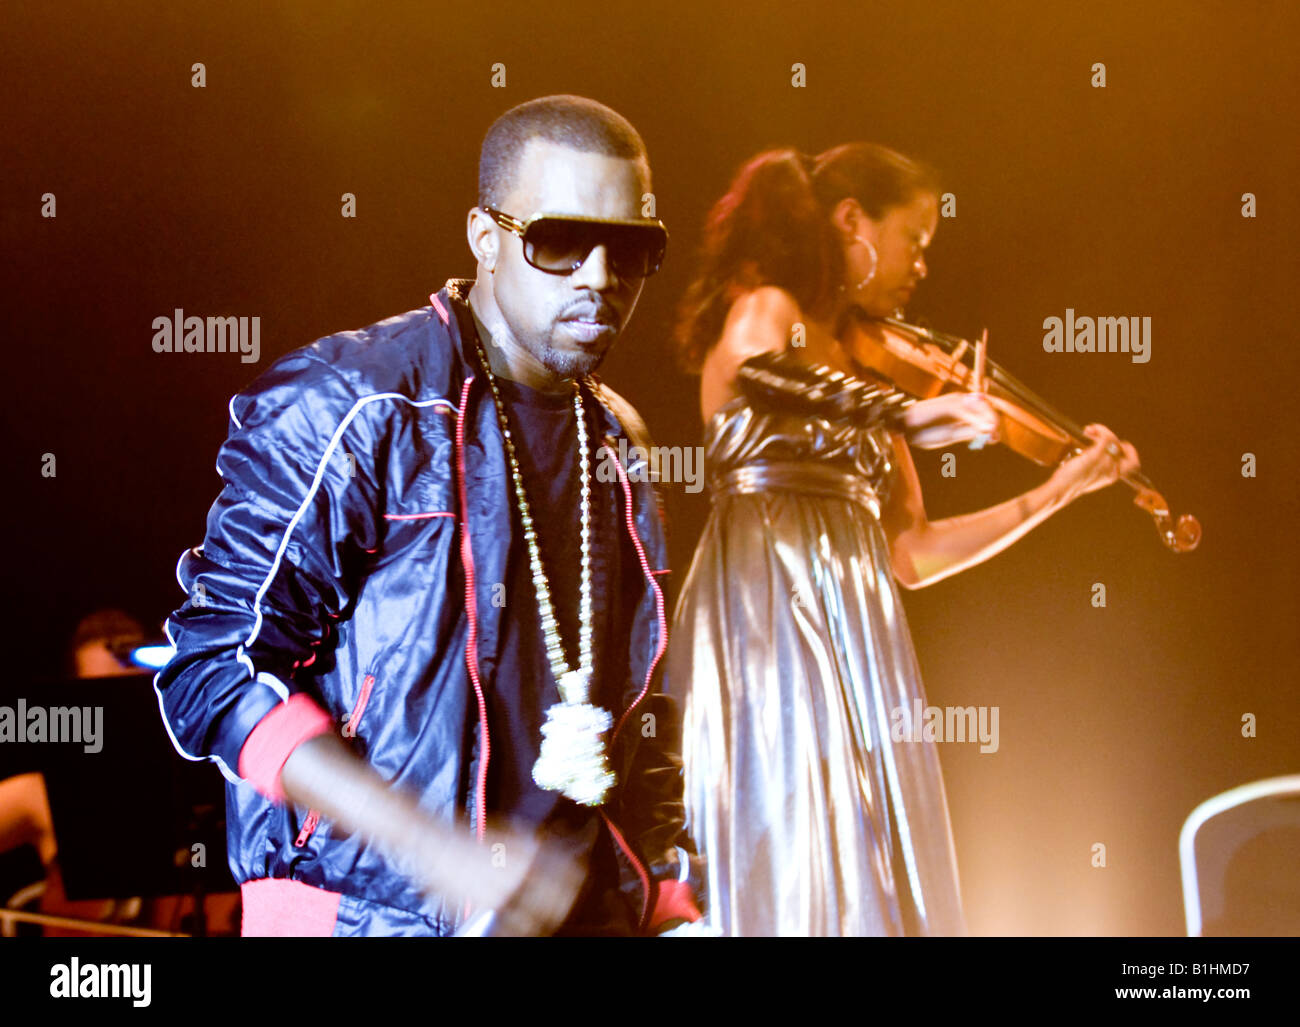 Kanye West  performing on  stage with violinist - Stock Image